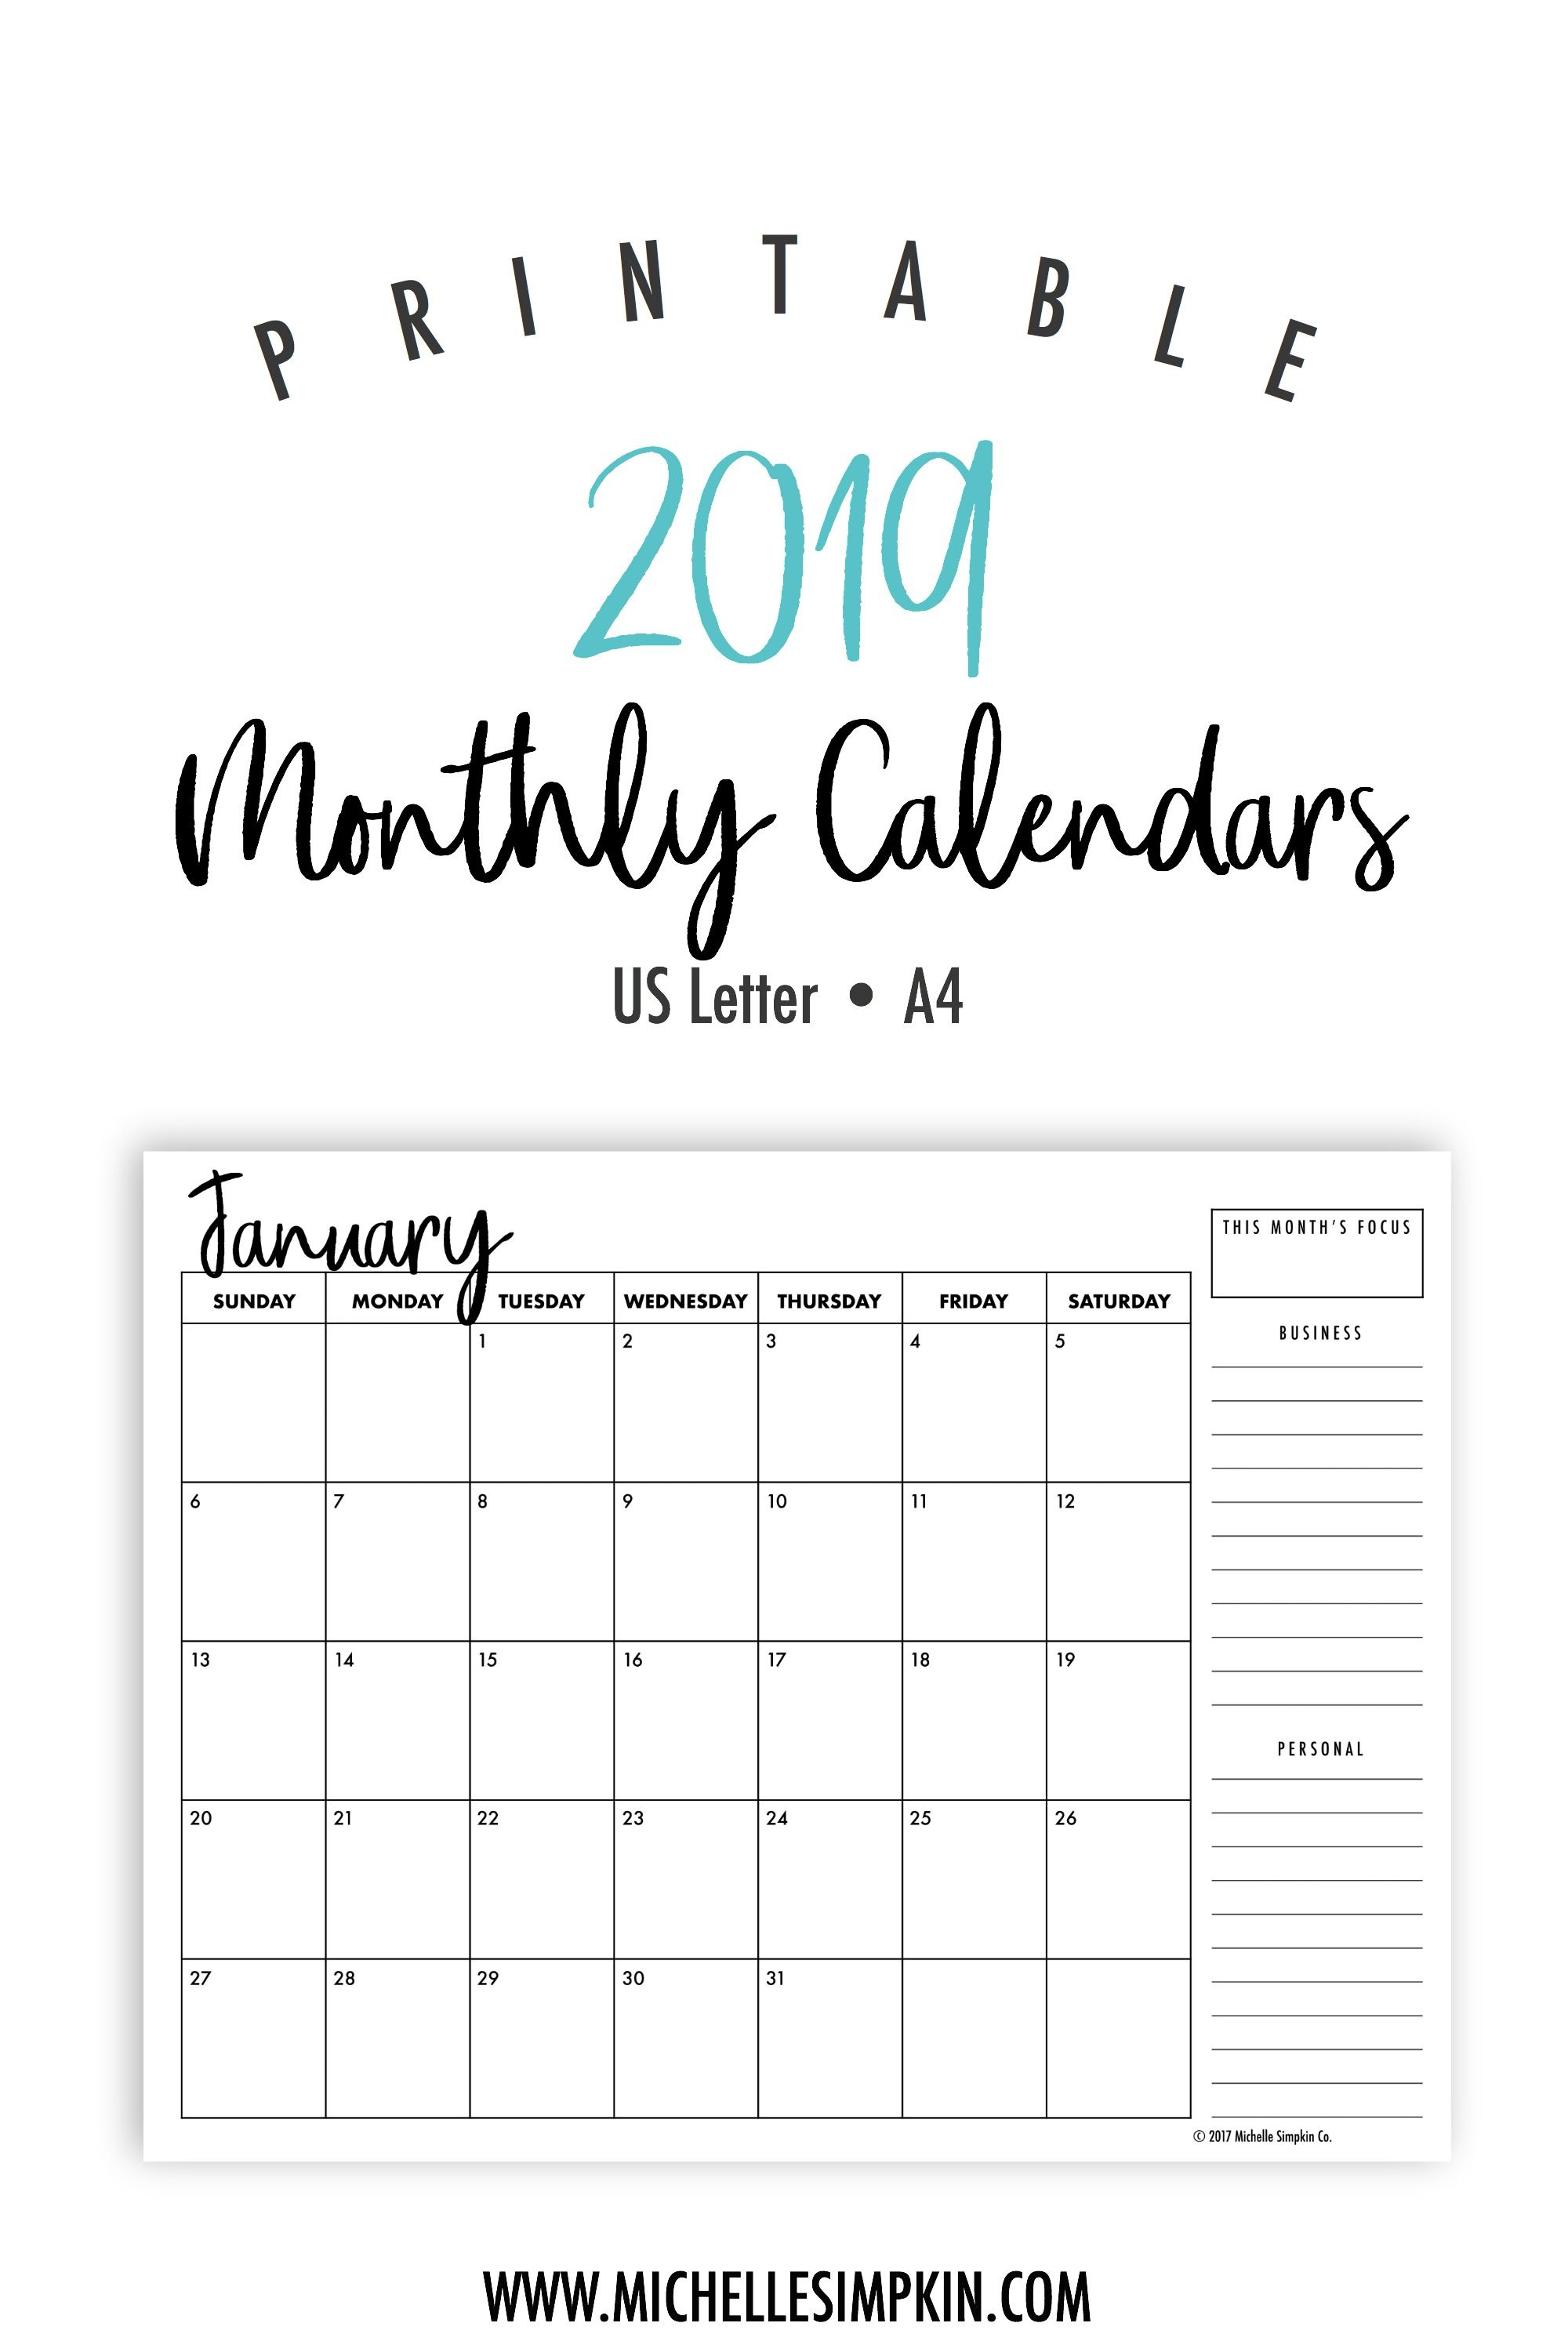 Year 2019 Calendar Printable With Monthly Calendars Landscape US Letter A4